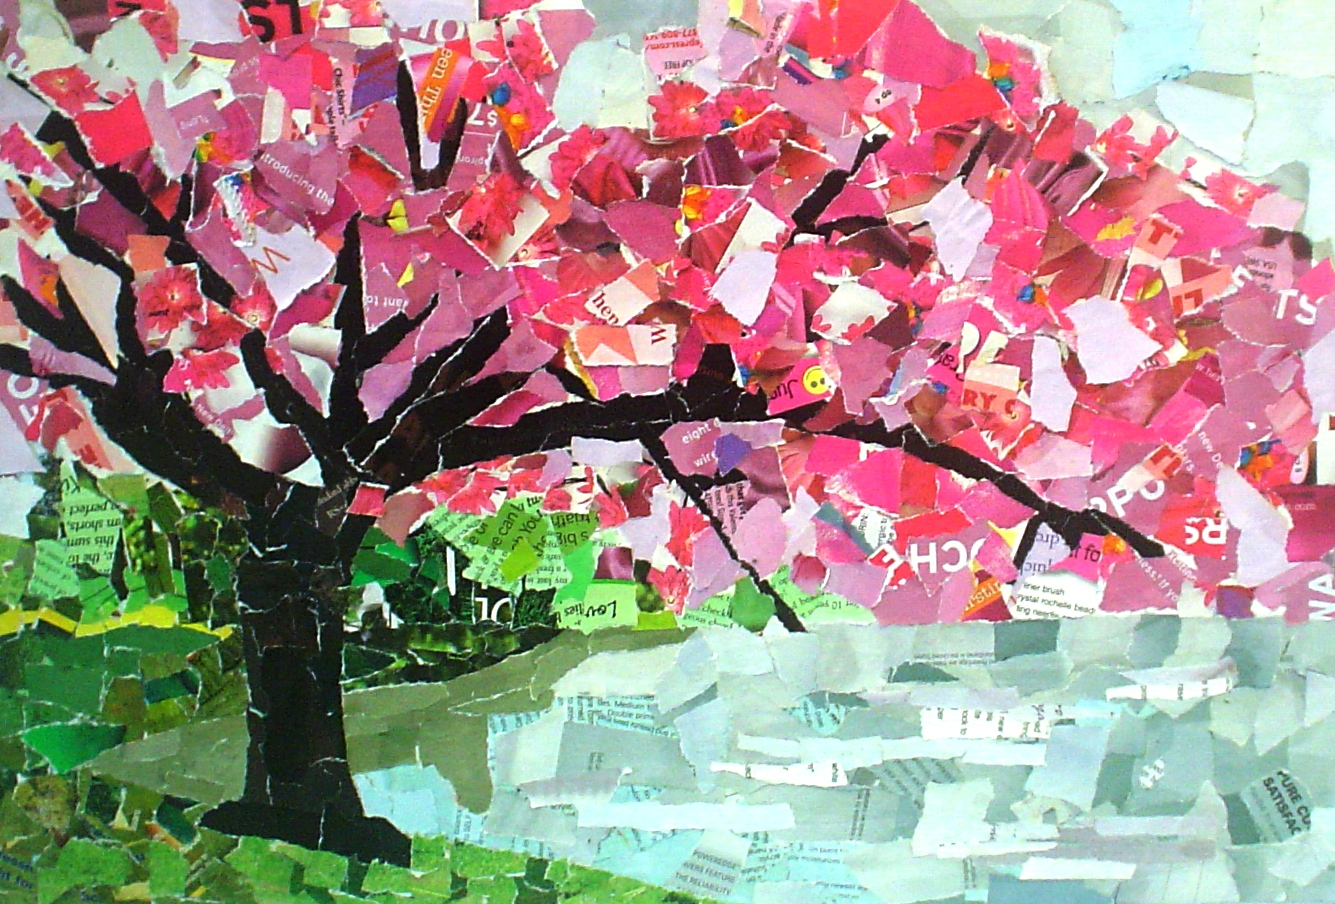 torn paper collage ideas Torn paper collage art | nancy standlee fine art by gina on indulgycom indulgy popular shopping tools about on this torn paper collage piece i've used some images from a starbucks sack capi ::: create art portfolio ideas at milliandecom , art school portfolio work, art, paper.